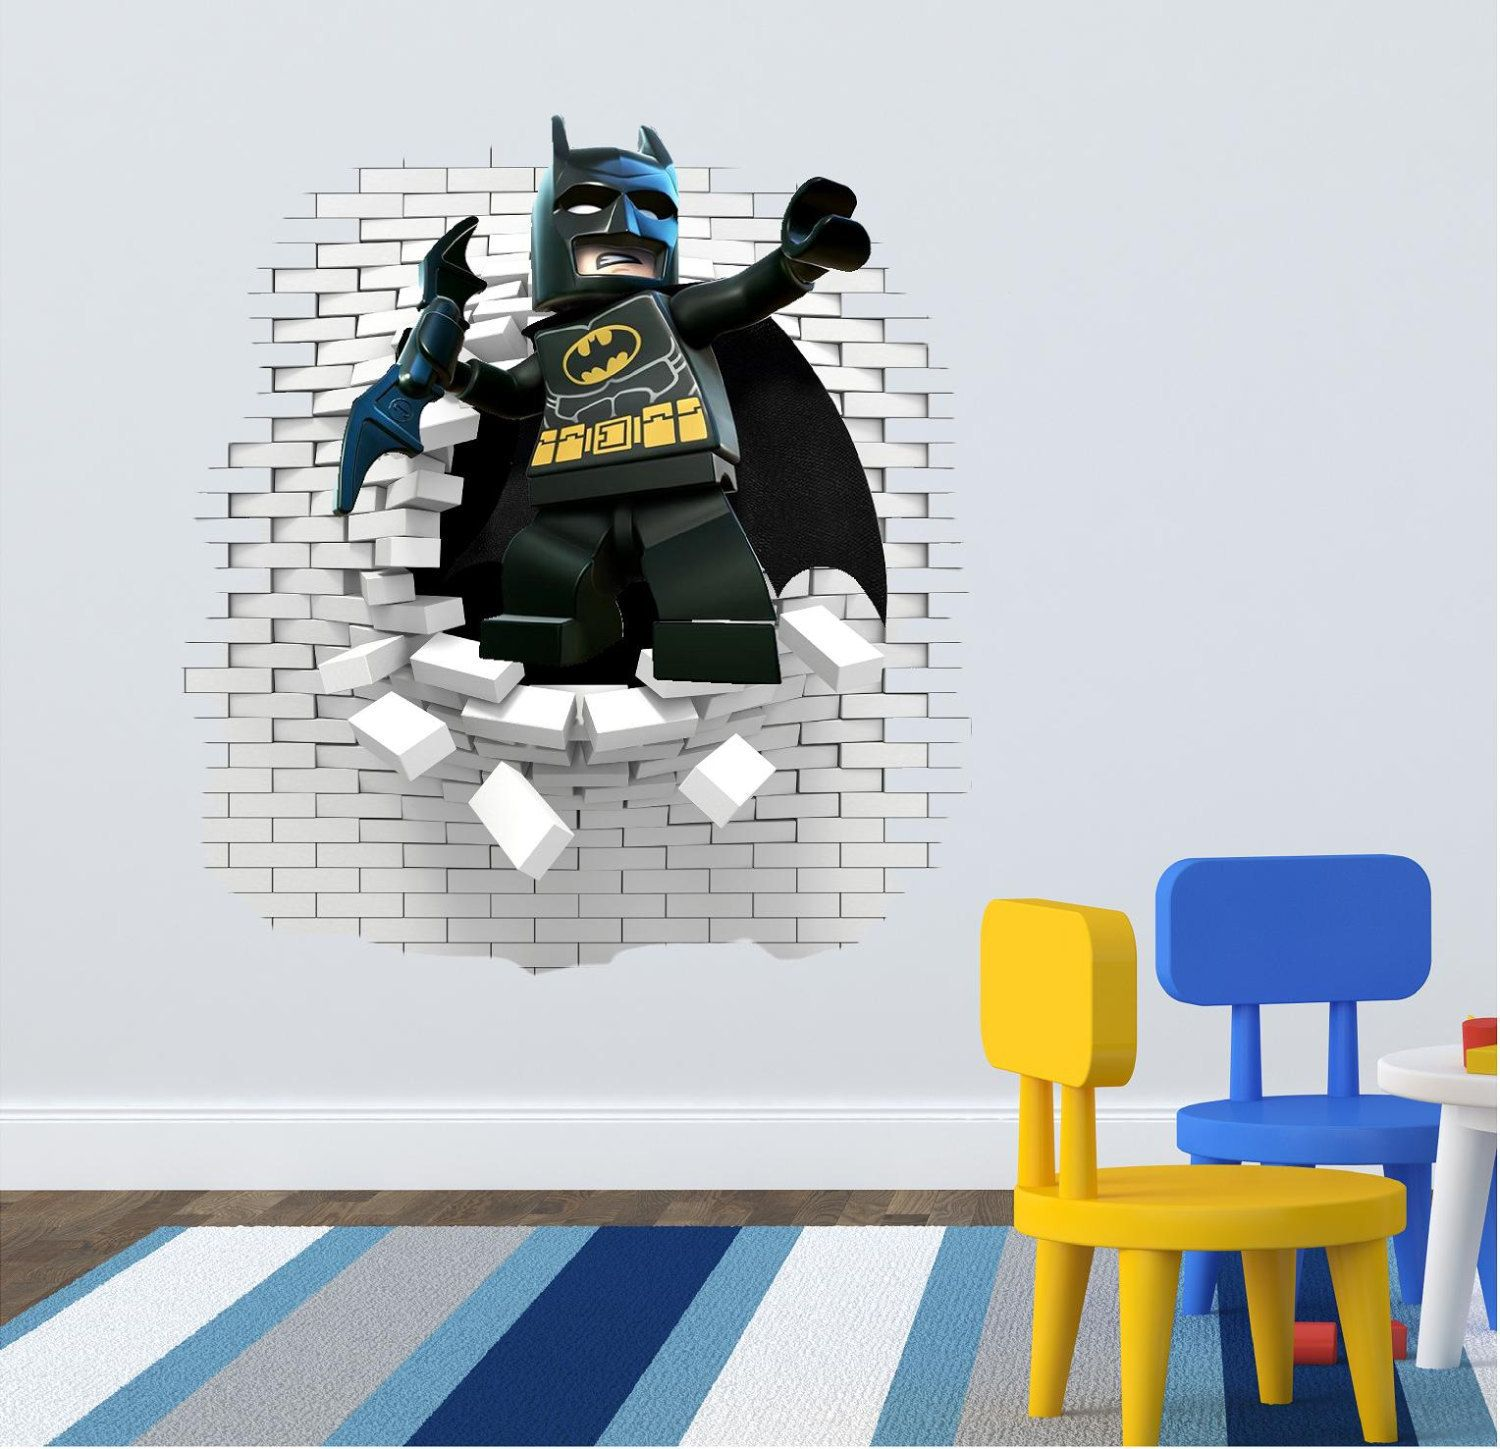 3d lego batman wall decal great for the kids room by artogtext on 3d lego batman wall decal great for the kids room by artogtext on etsy amipublicfo Image collections